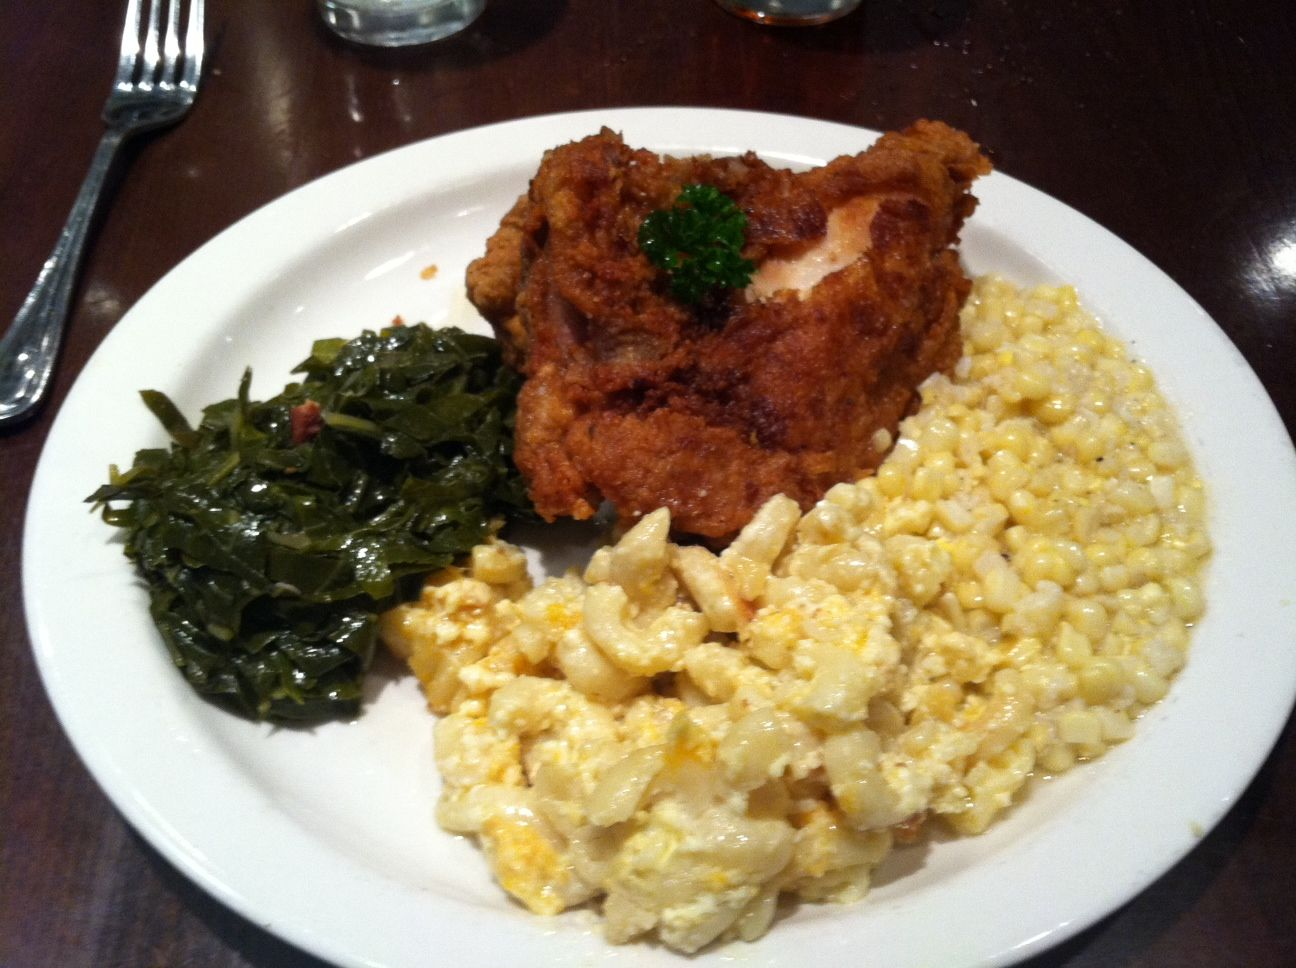 Kings Kitchen Charlotte NC - You have got to try this place out ...